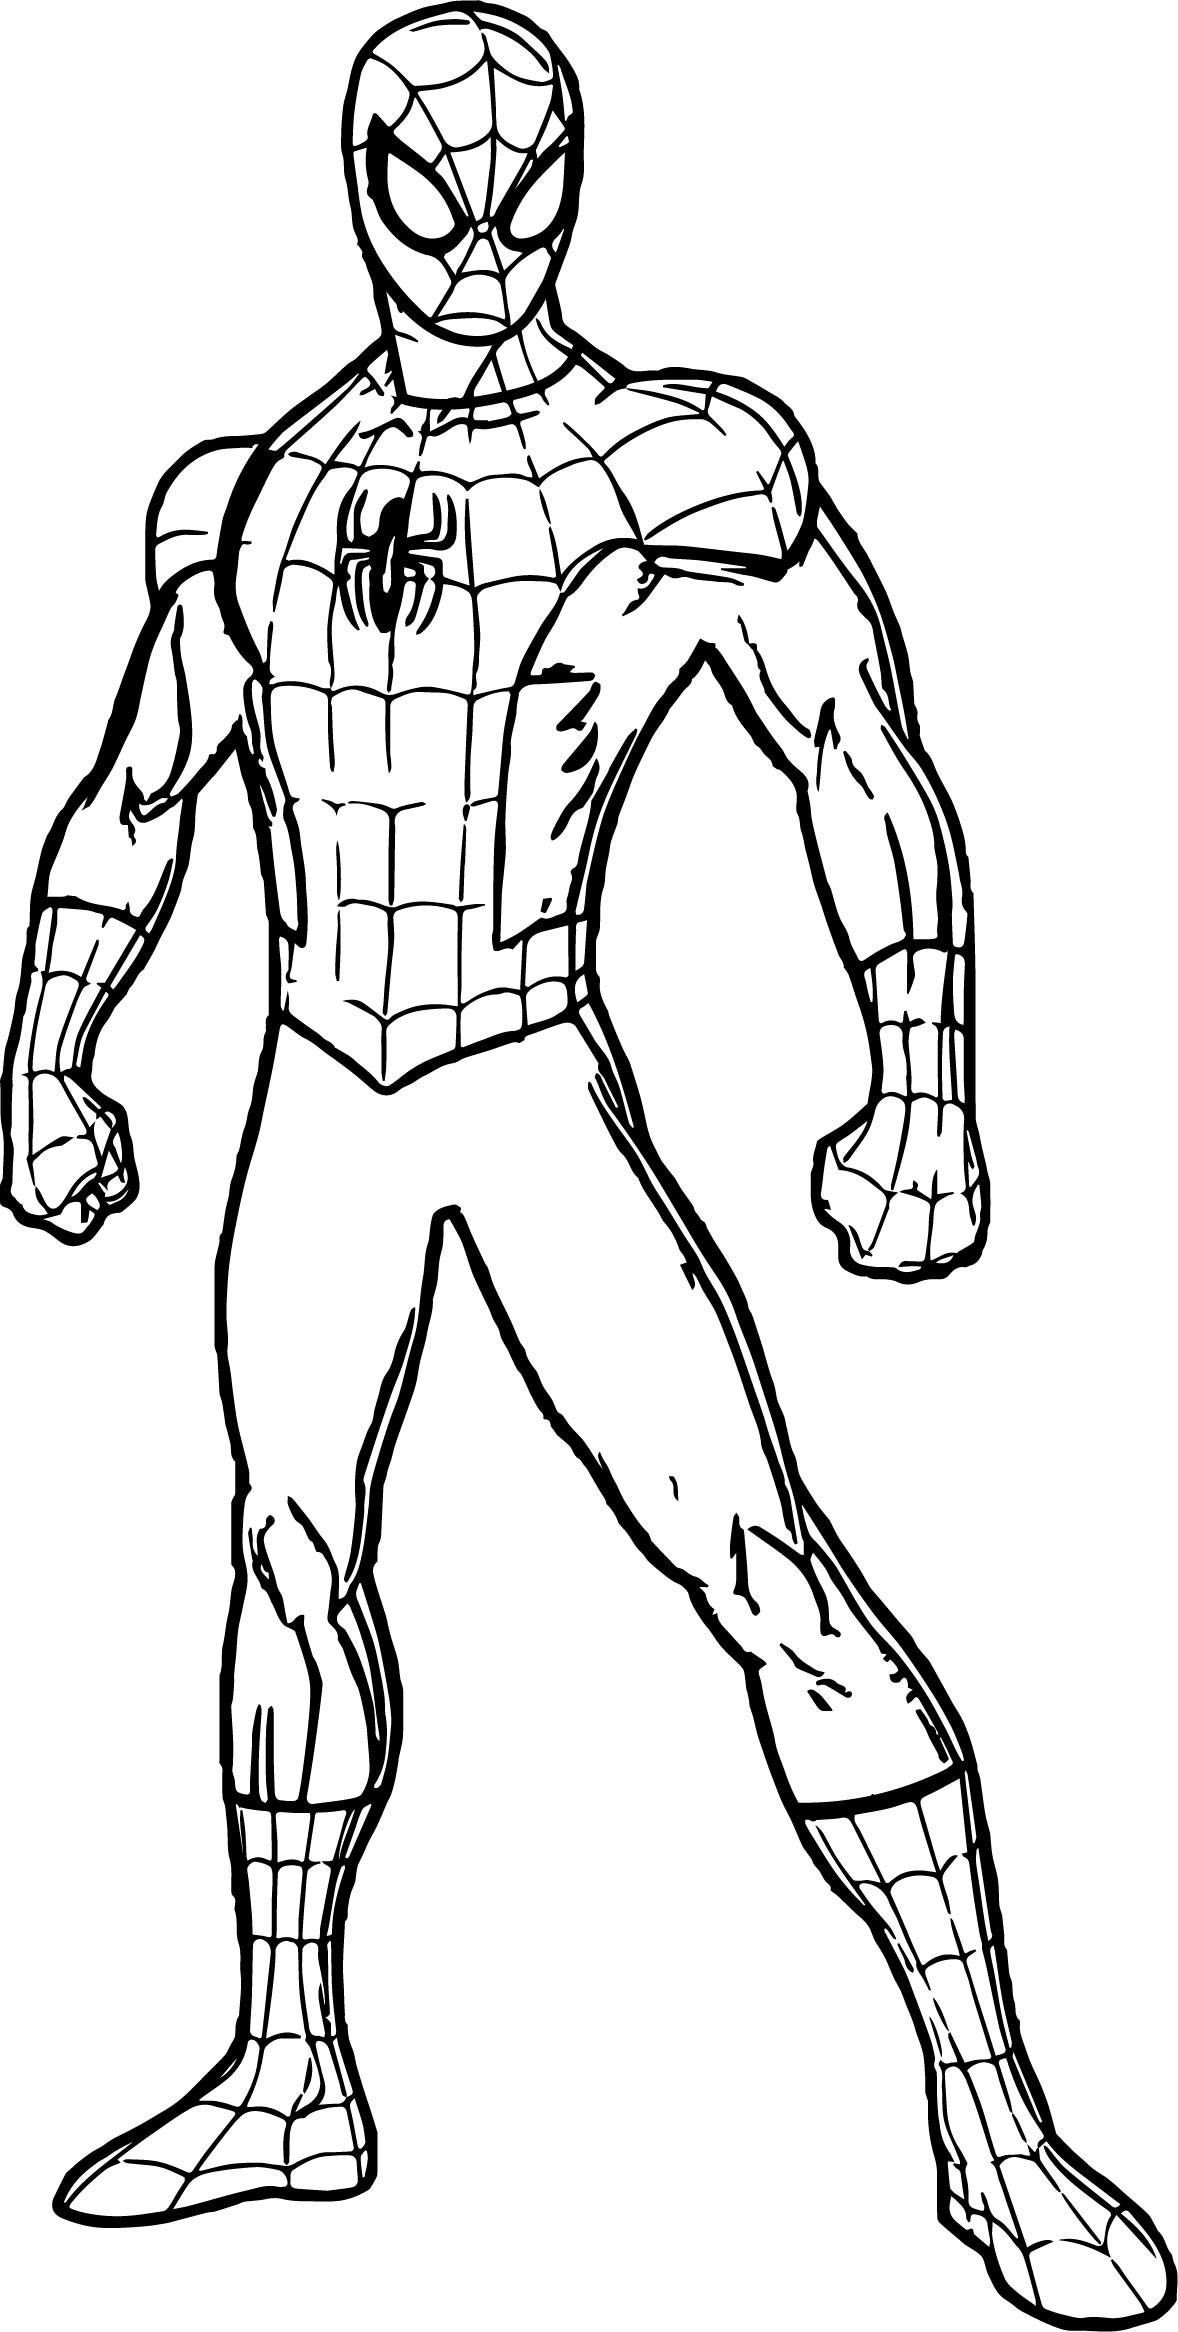 Spiderman Coloring Page New Printable Pages 3 At